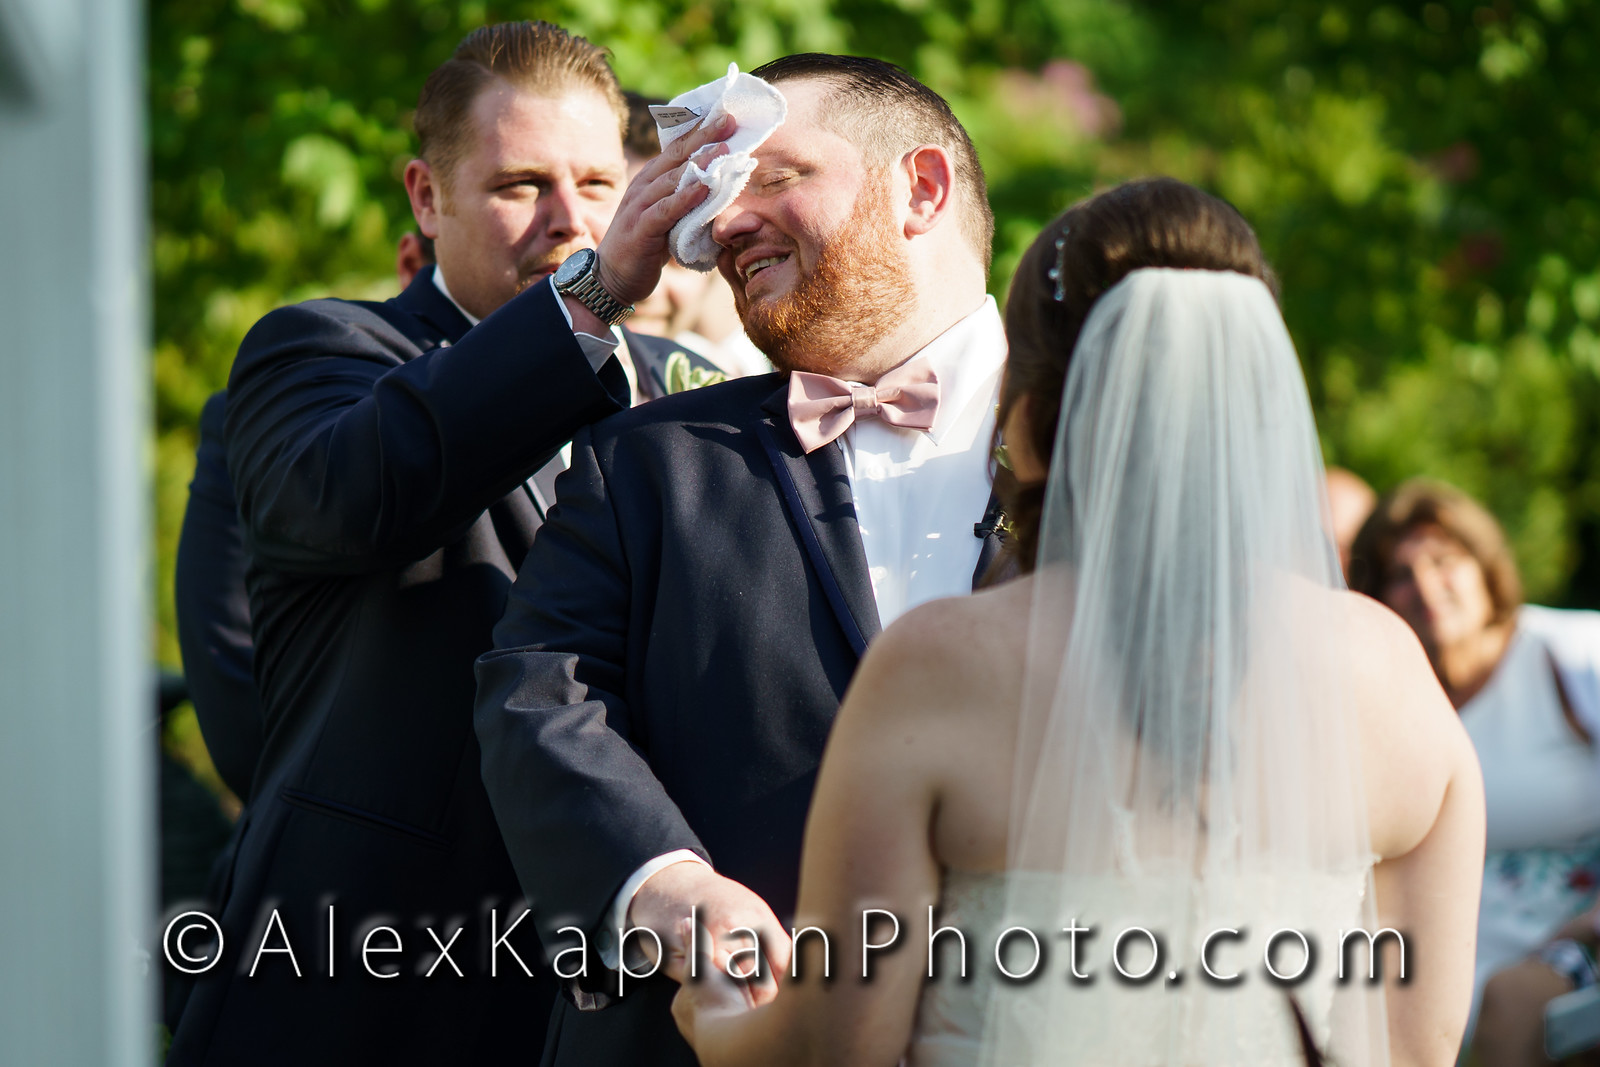 Wedding at the Sherwood Chalet / Forest Lodge, Warren, NJ